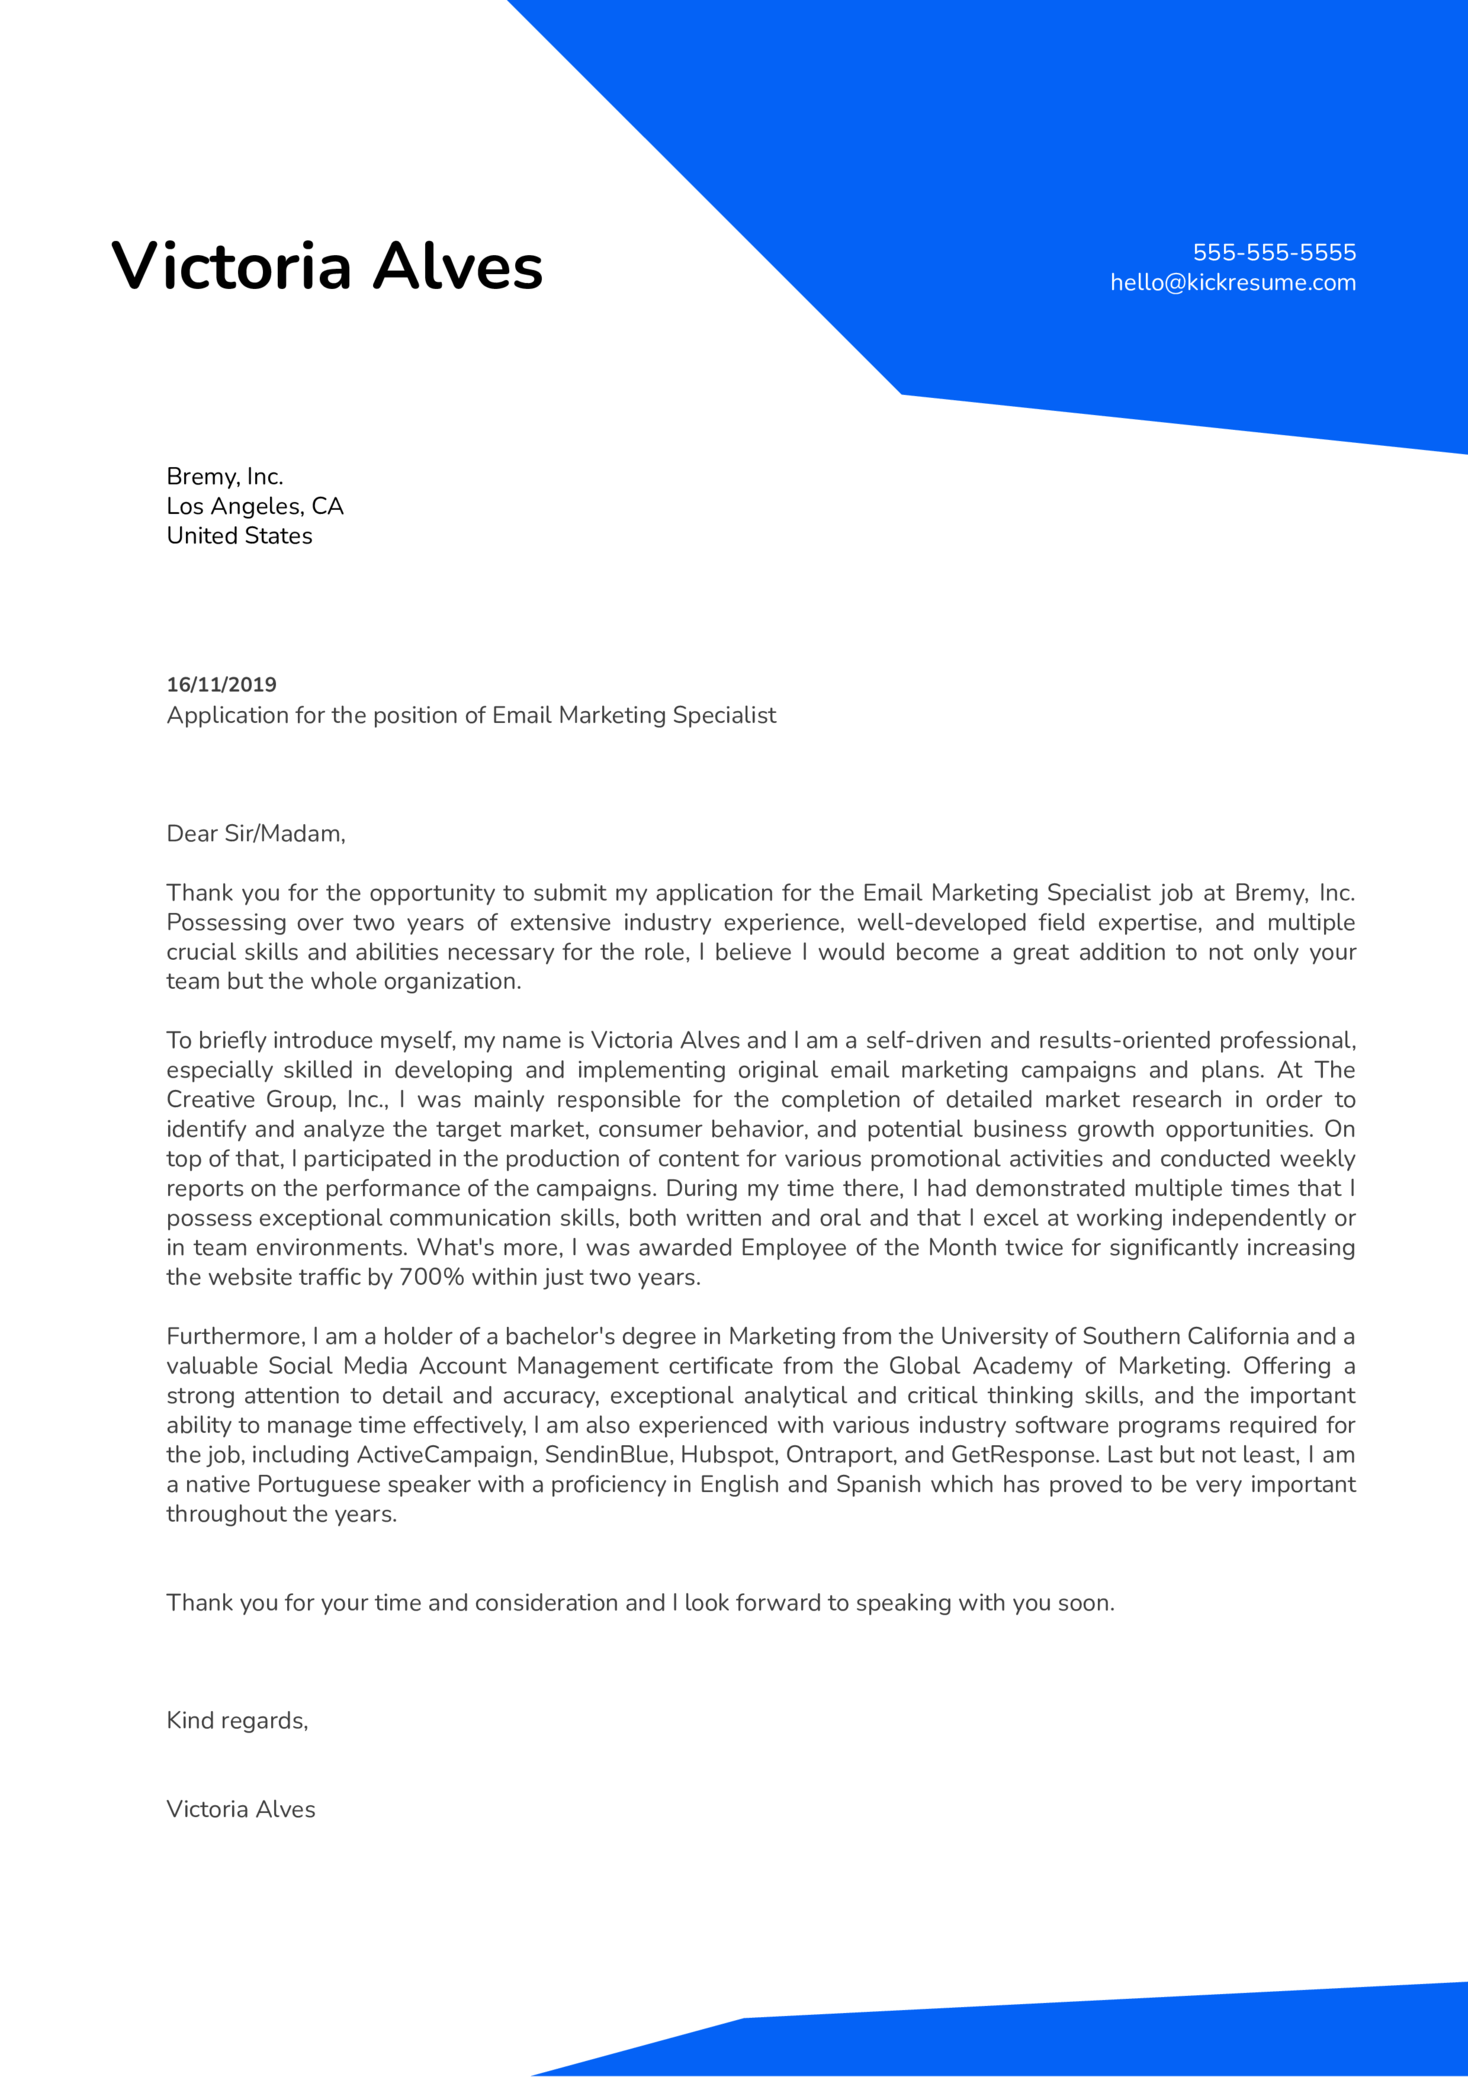 Email Marketing Specialist Cover Letter Example